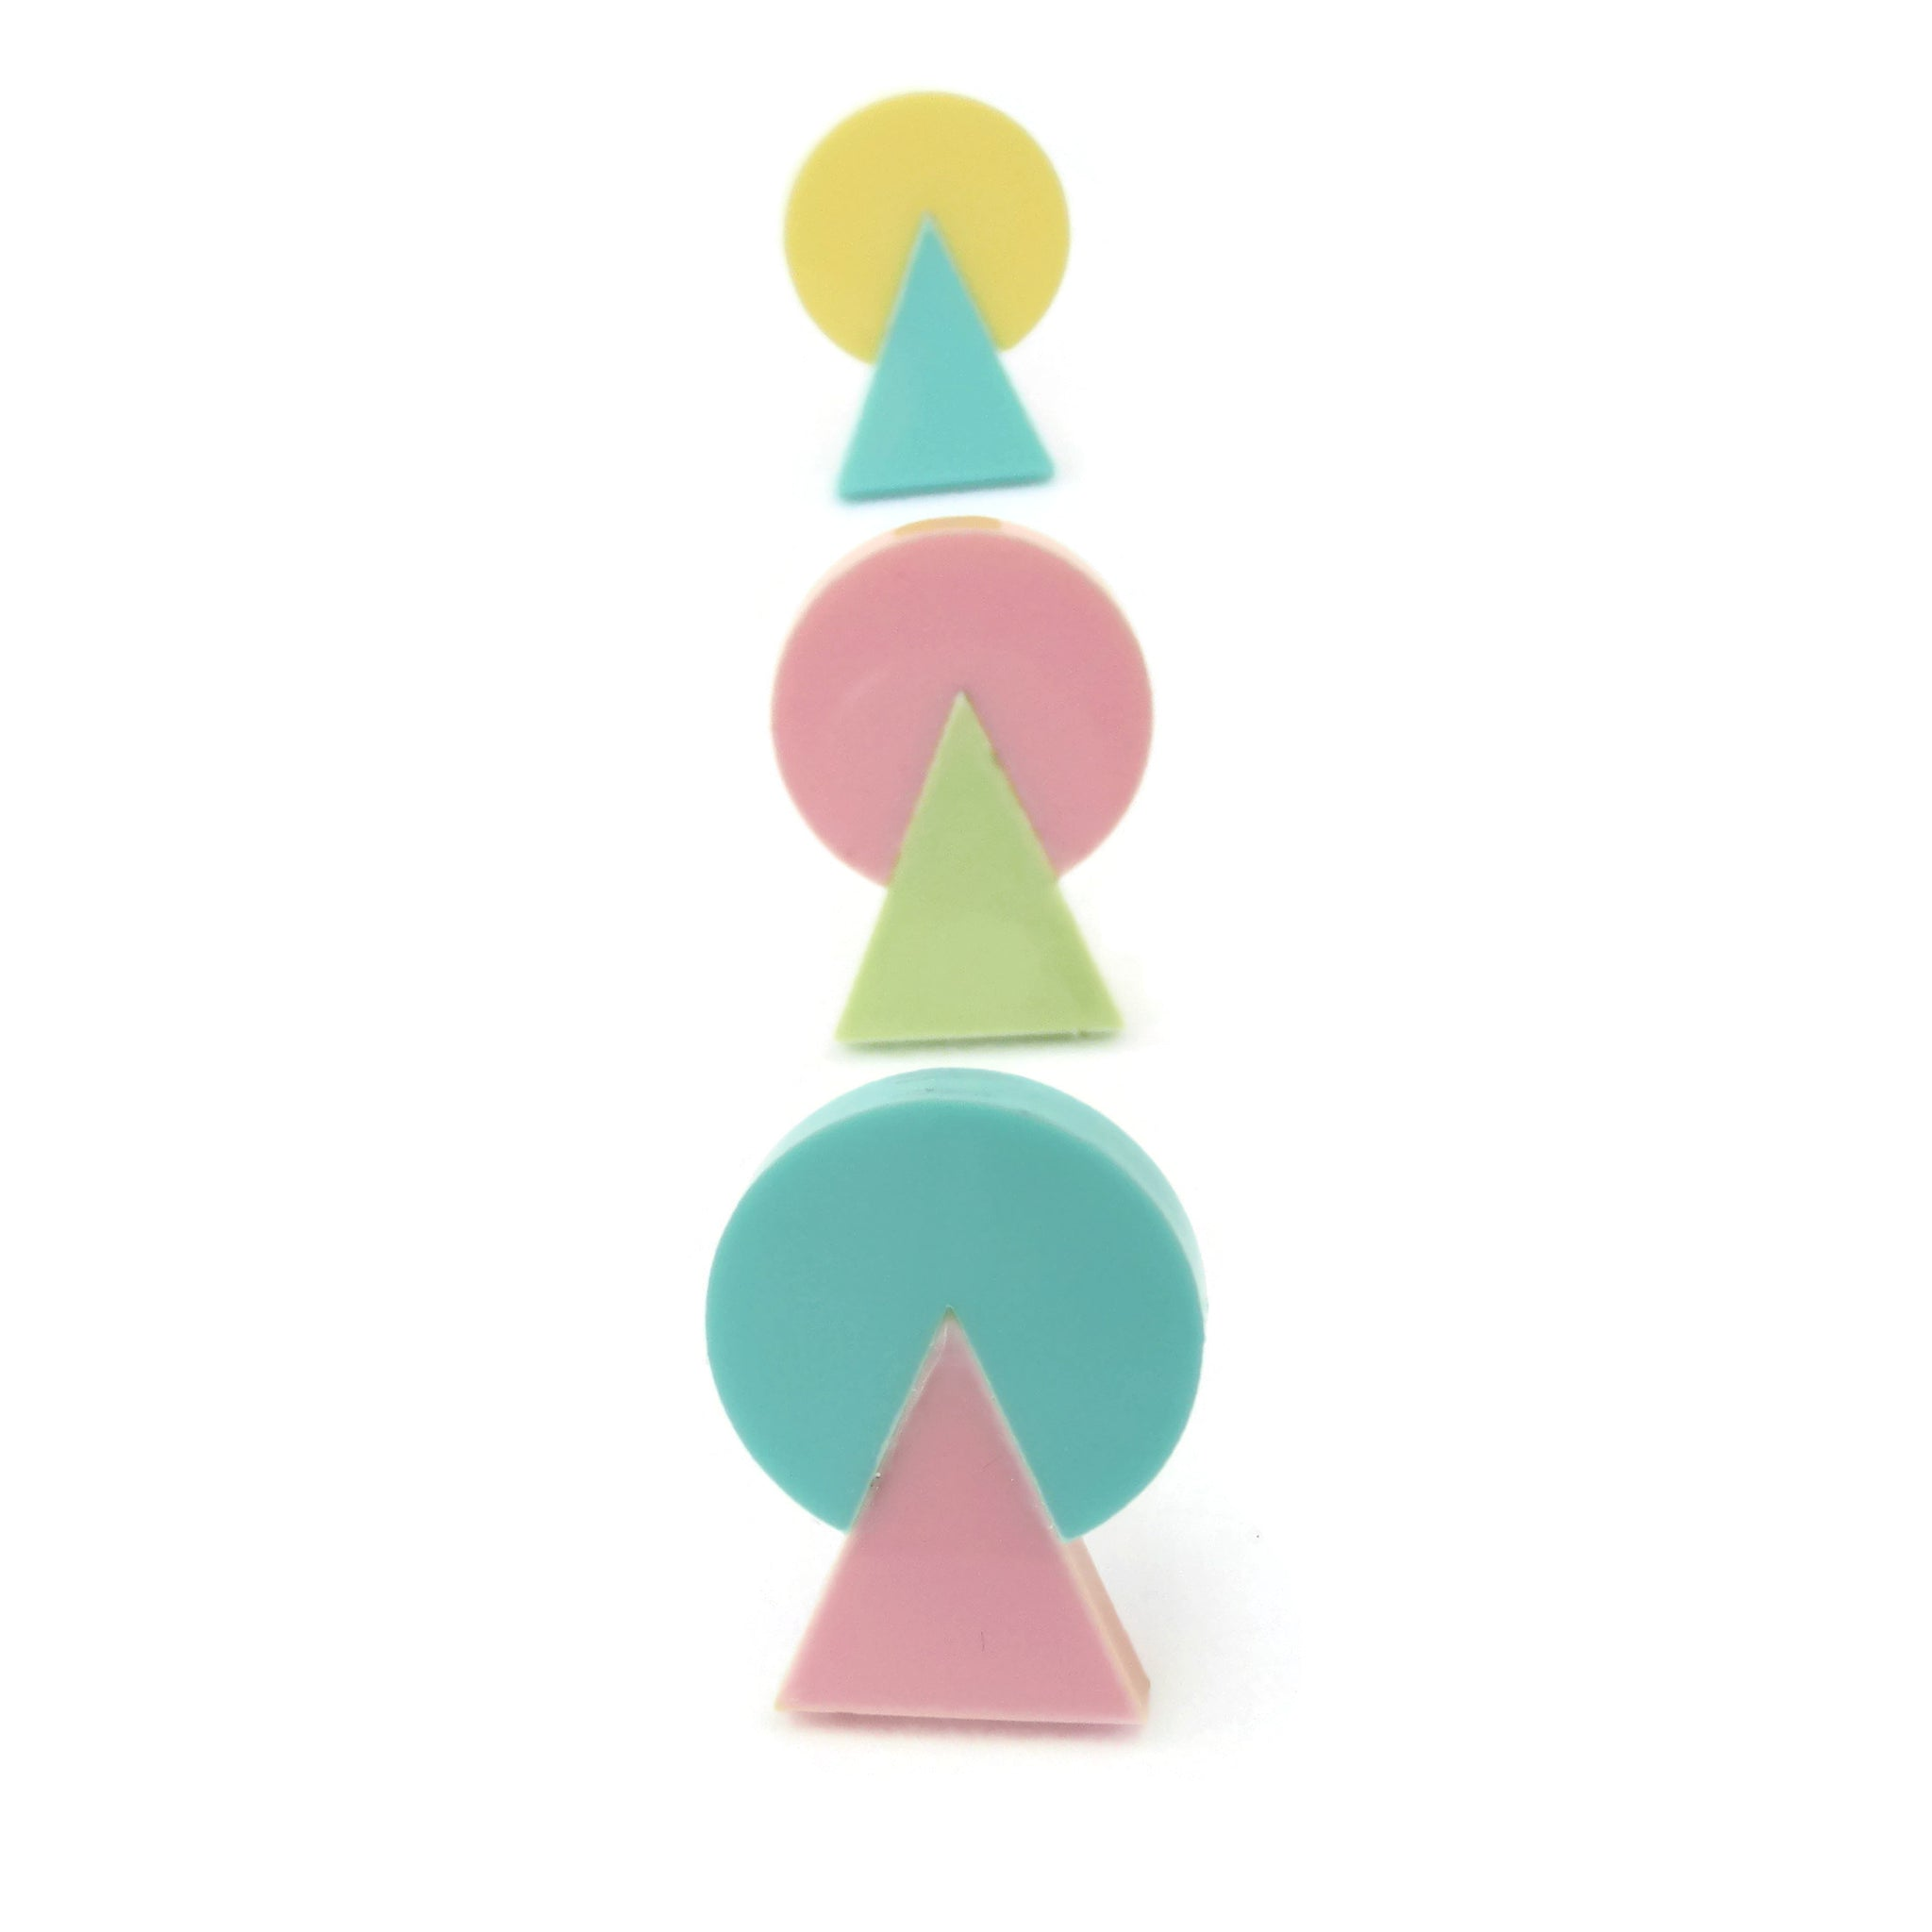 80's Shapes earrings, acrylic studs in contrasting pastel